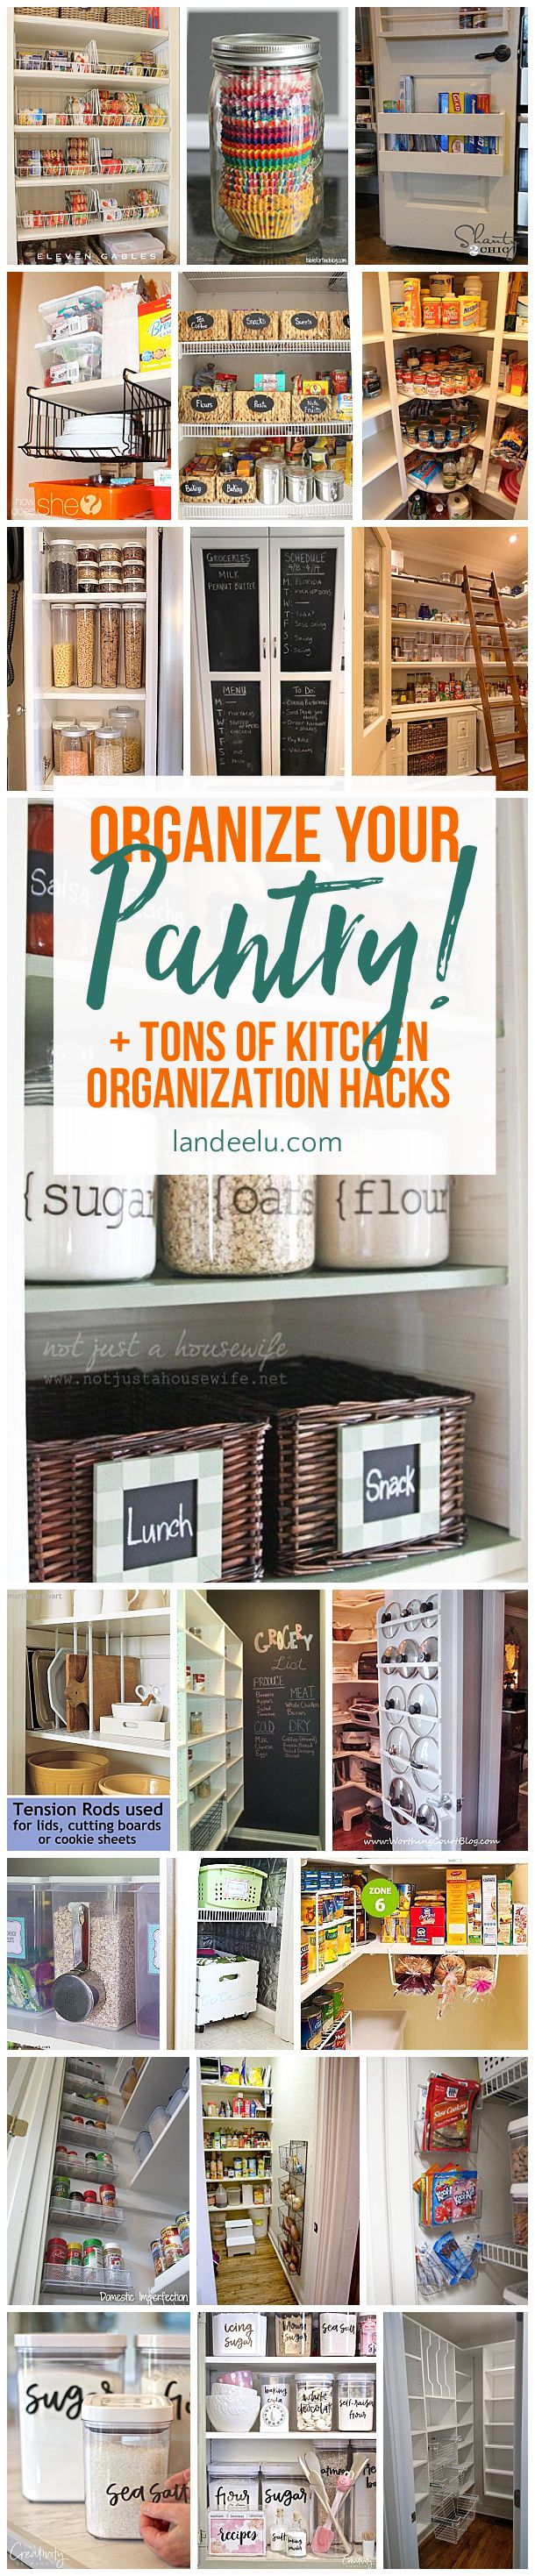 Kitchen Organization Ideas And Hacks  Pot Lids Organizations And Custom Kitchen Organization Ideas Design Inspiration